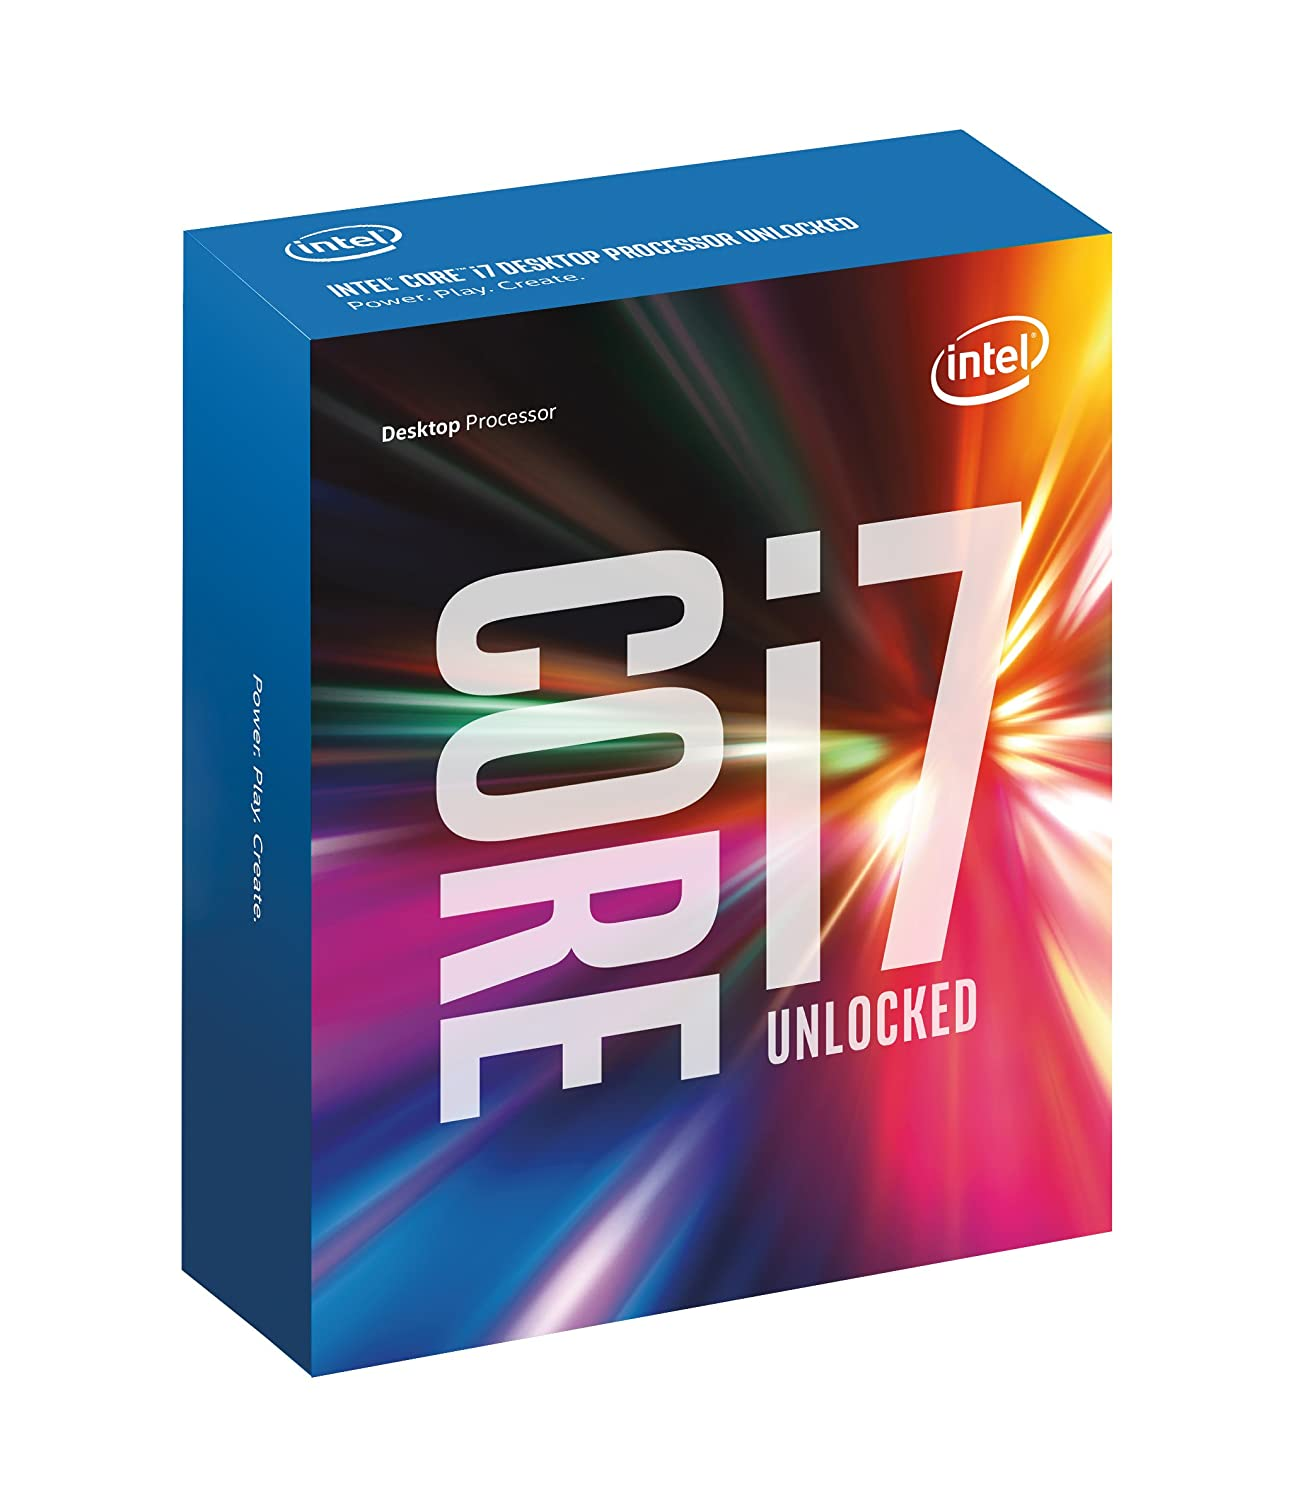 Intel Core i7 6700K 4.00 GHz Unlocked Quad Core Skylake CPU (LGA 1151)